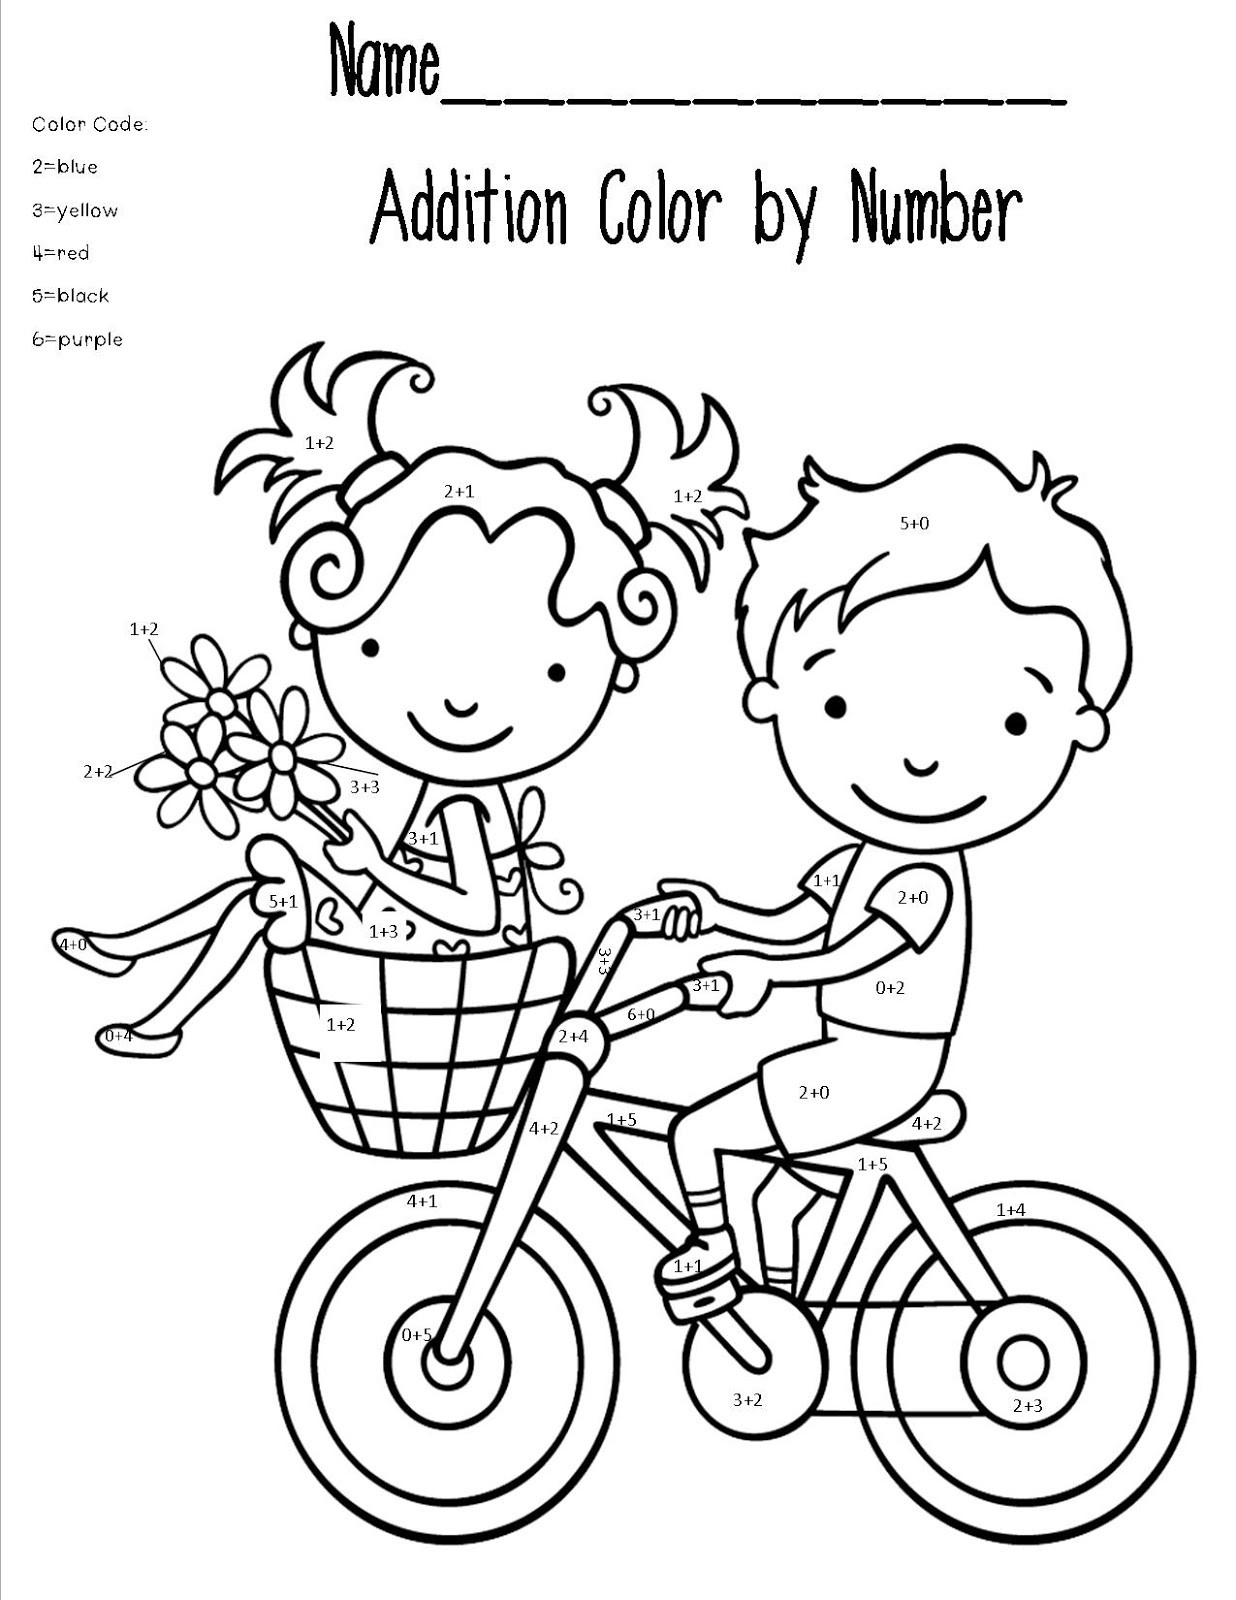 Coloring Sheets For Kids 10  Free Printable Math Coloring Pages for Kids Best